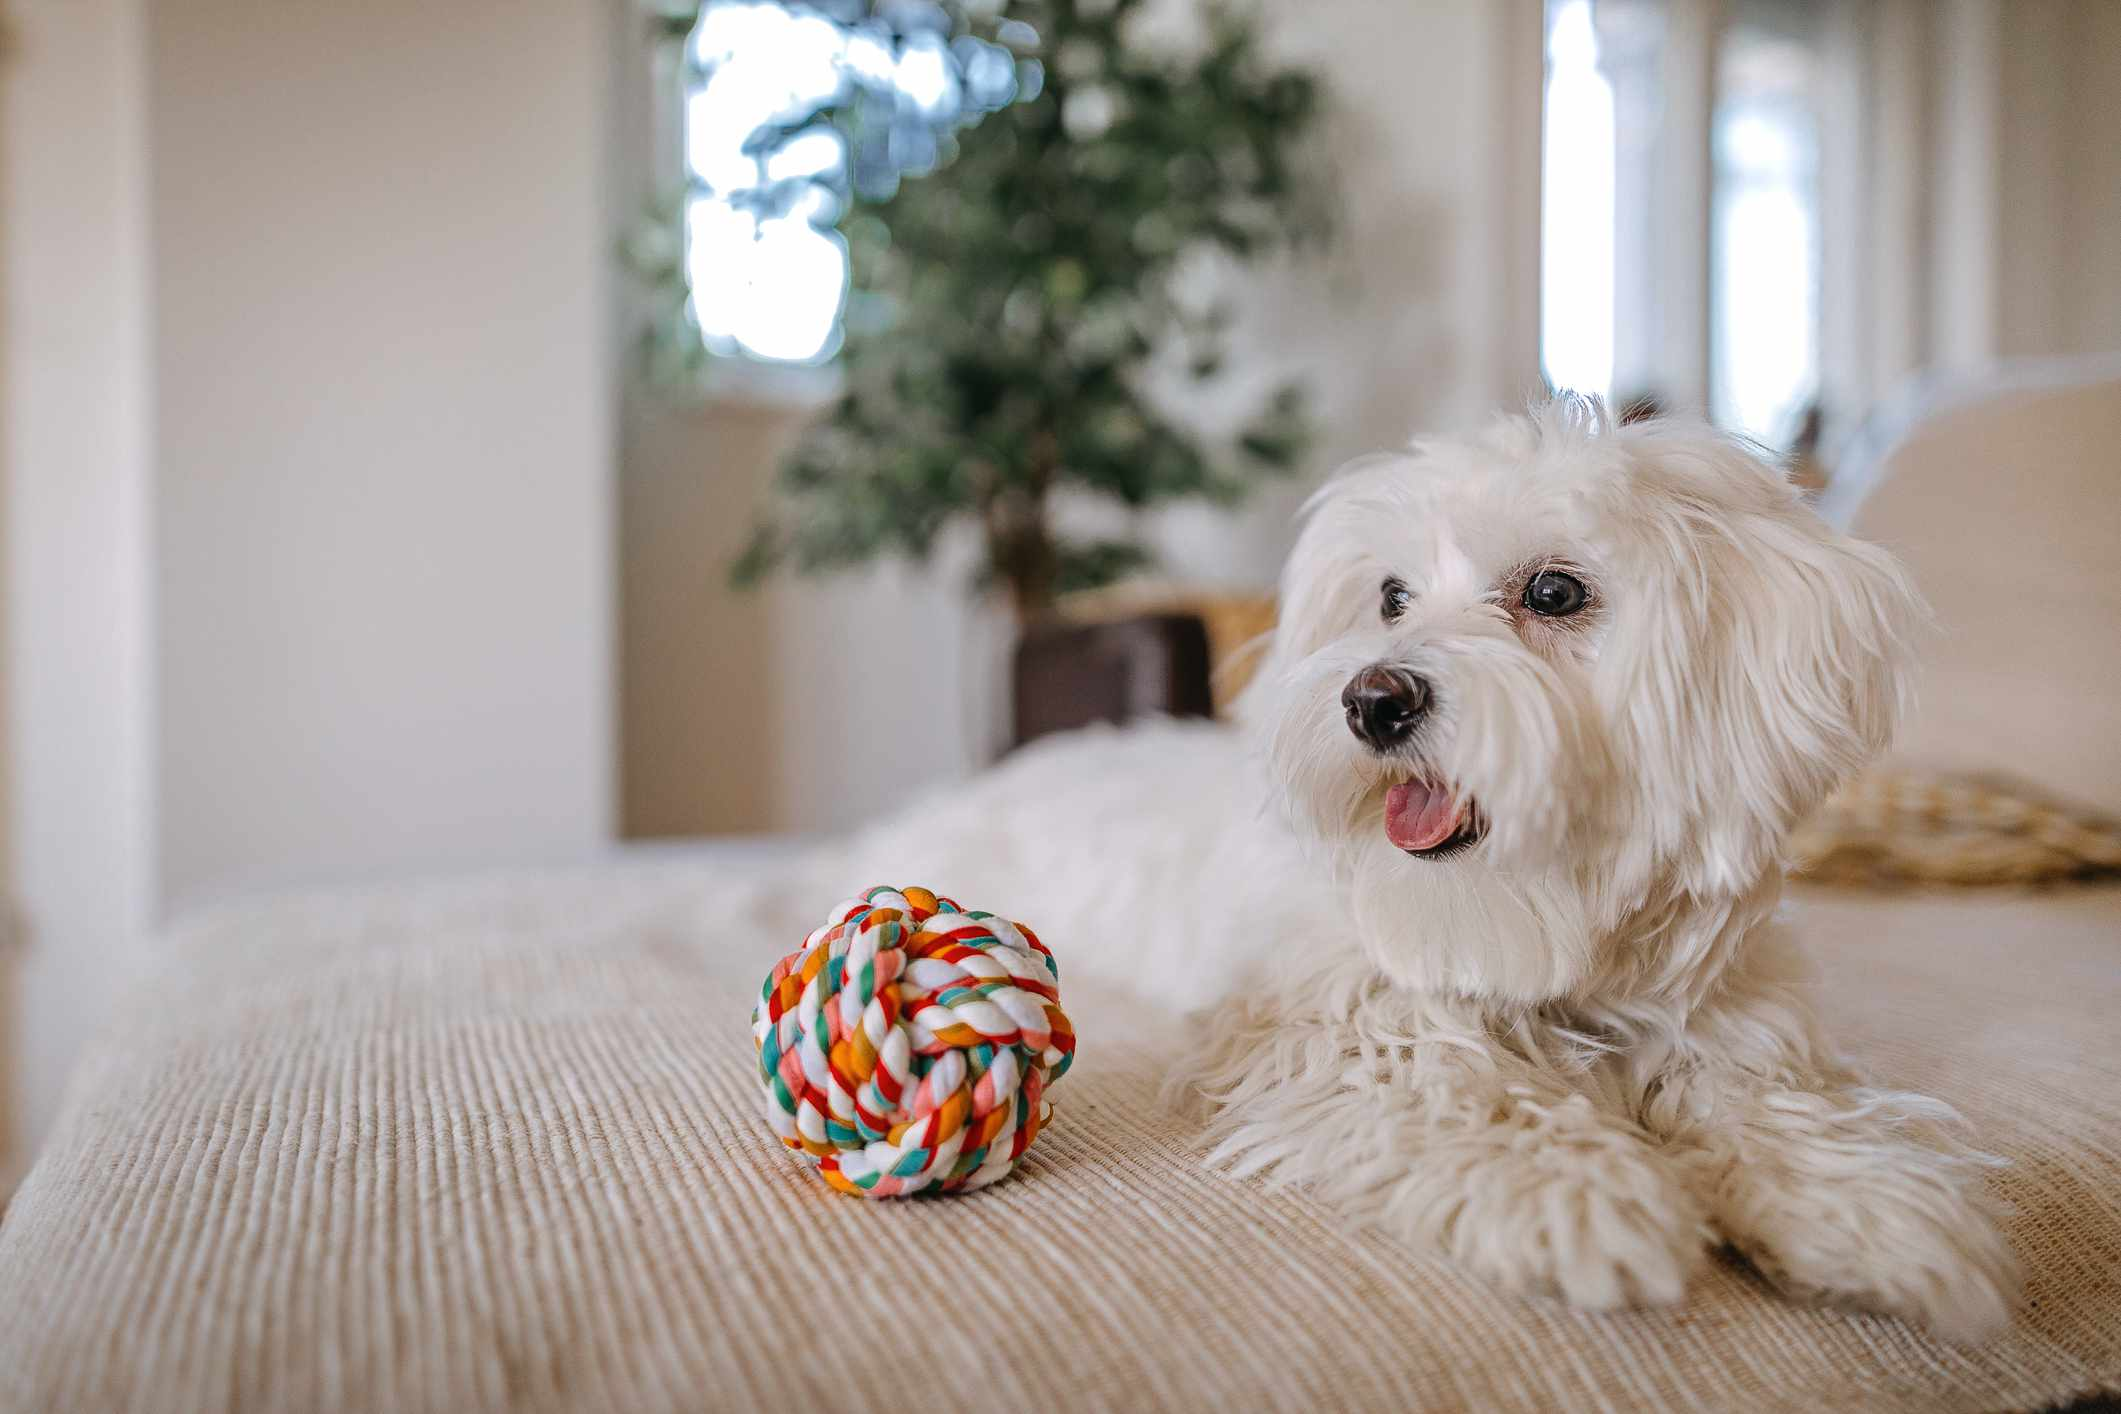 Maltese dog sitting on a couch.